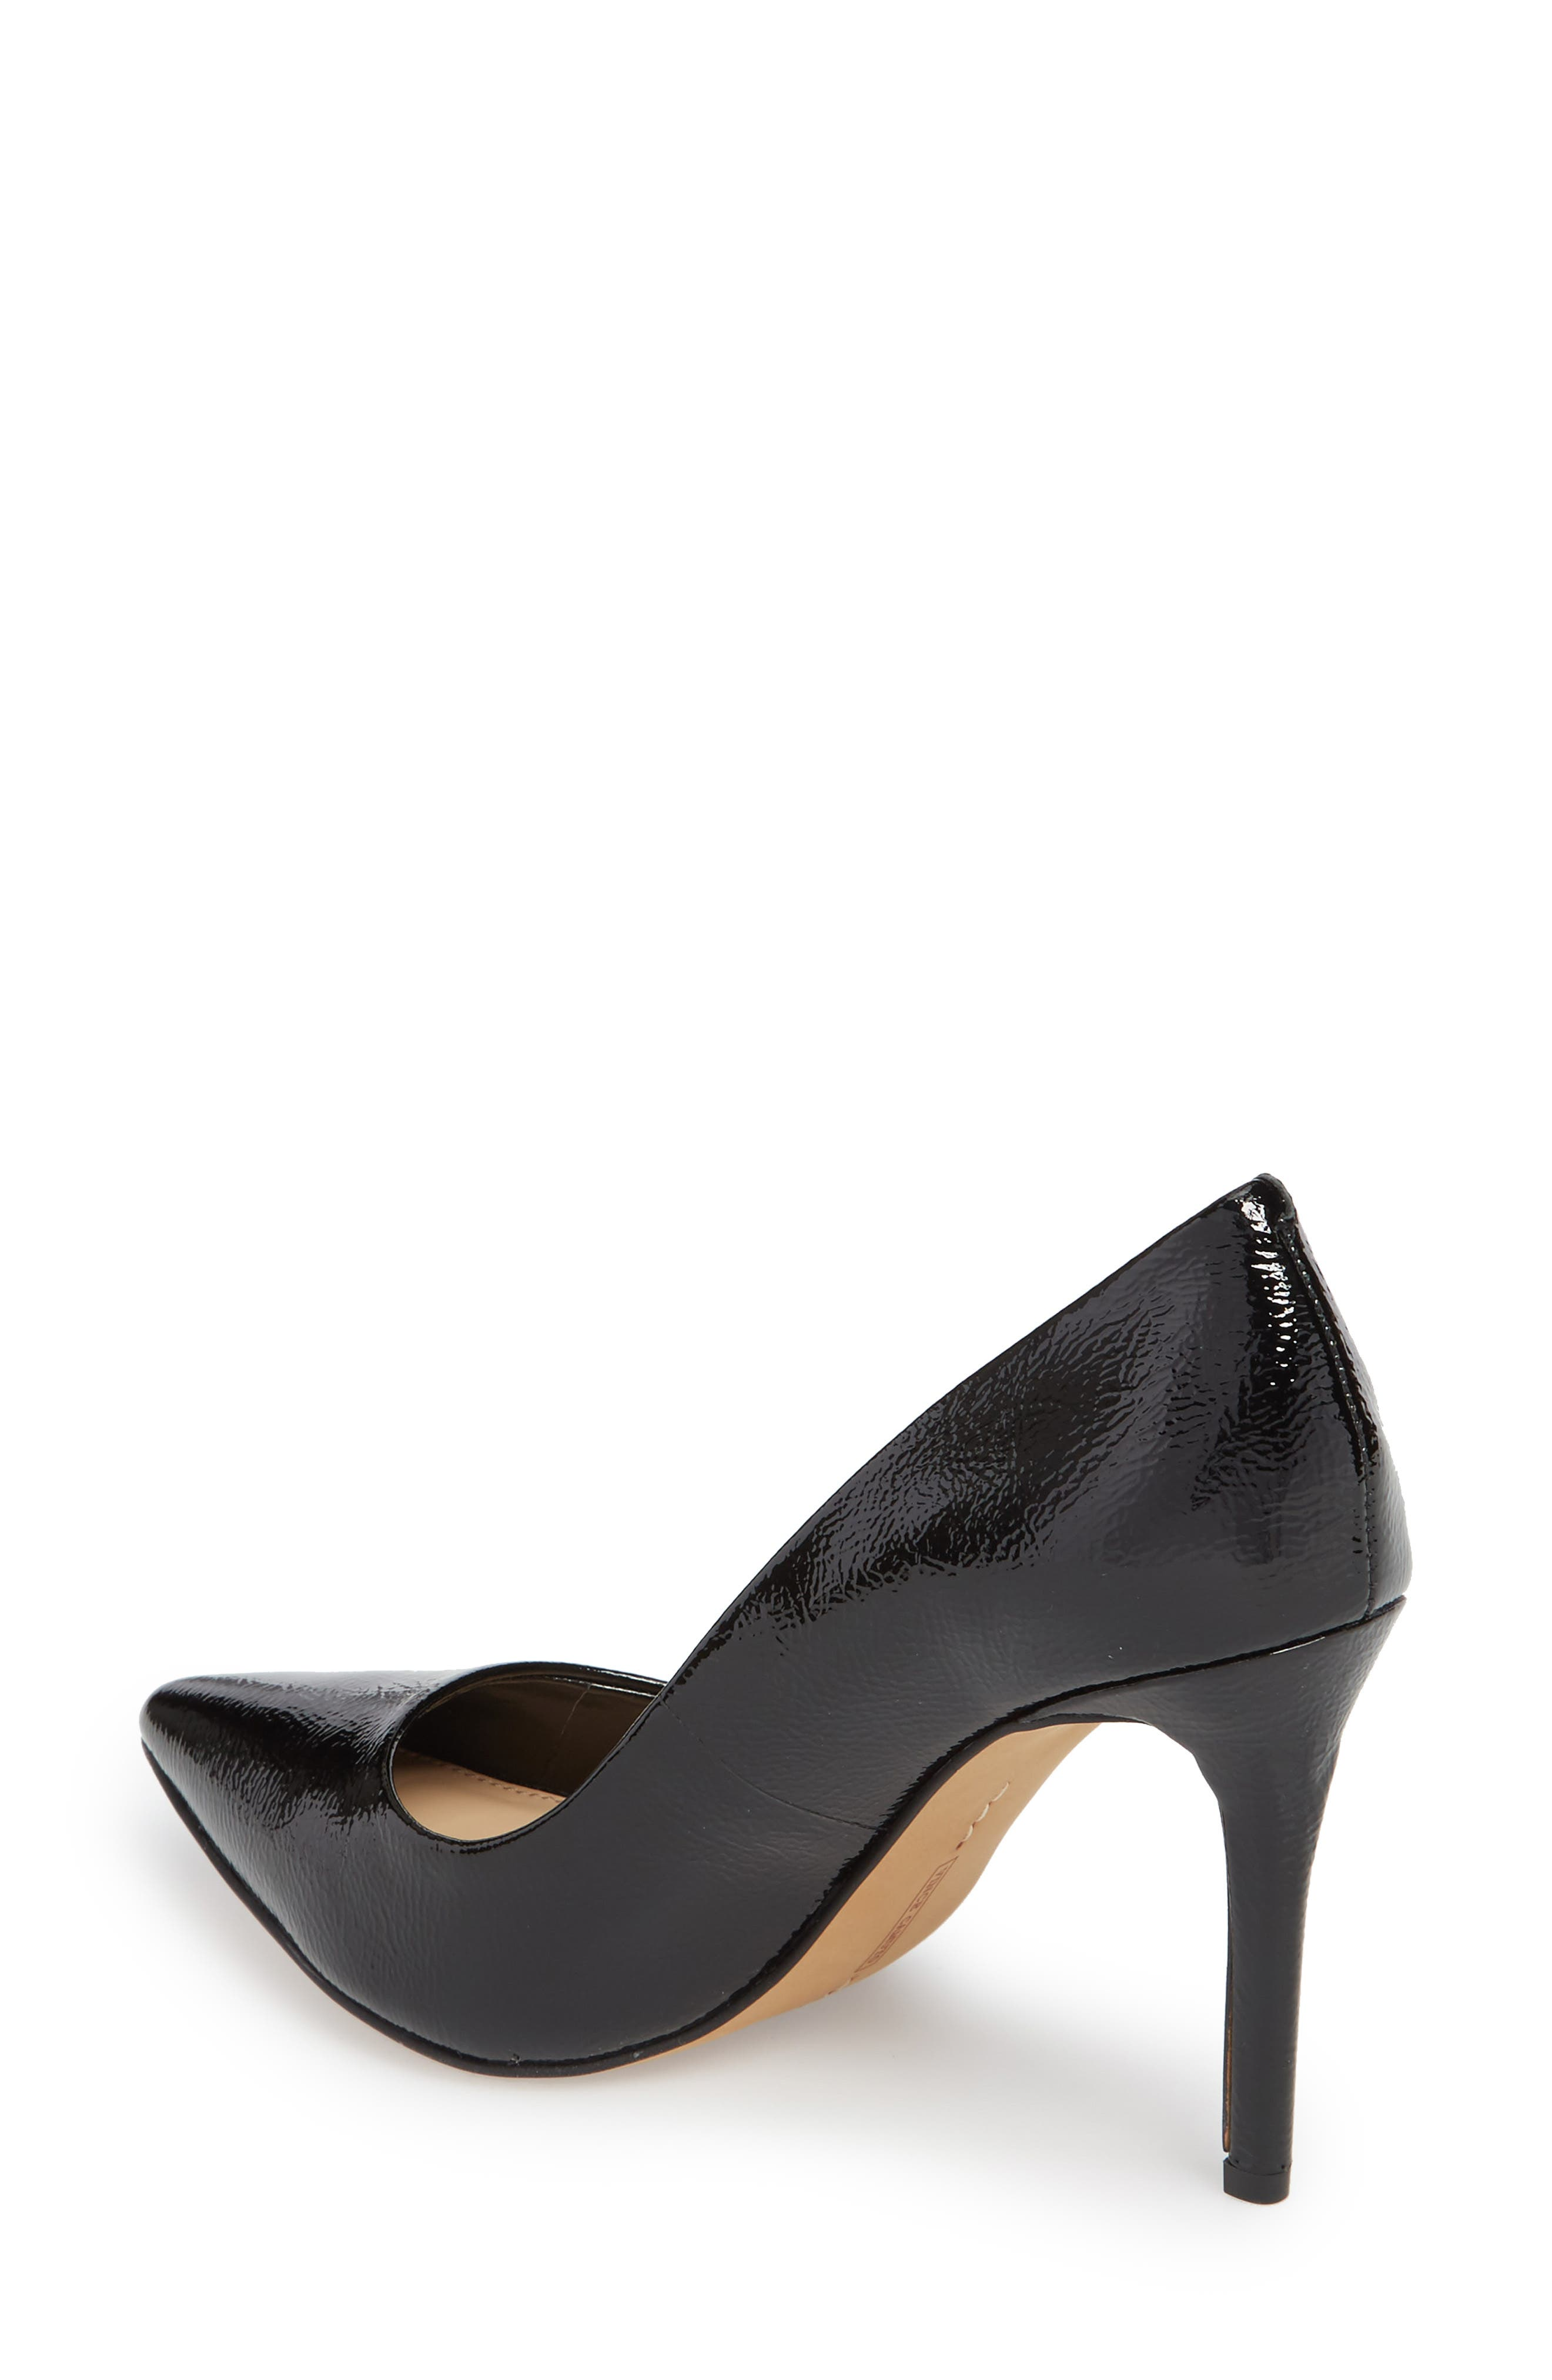 Savilla Pump,                             Alternate thumbnail 2, color,                             Black Patent